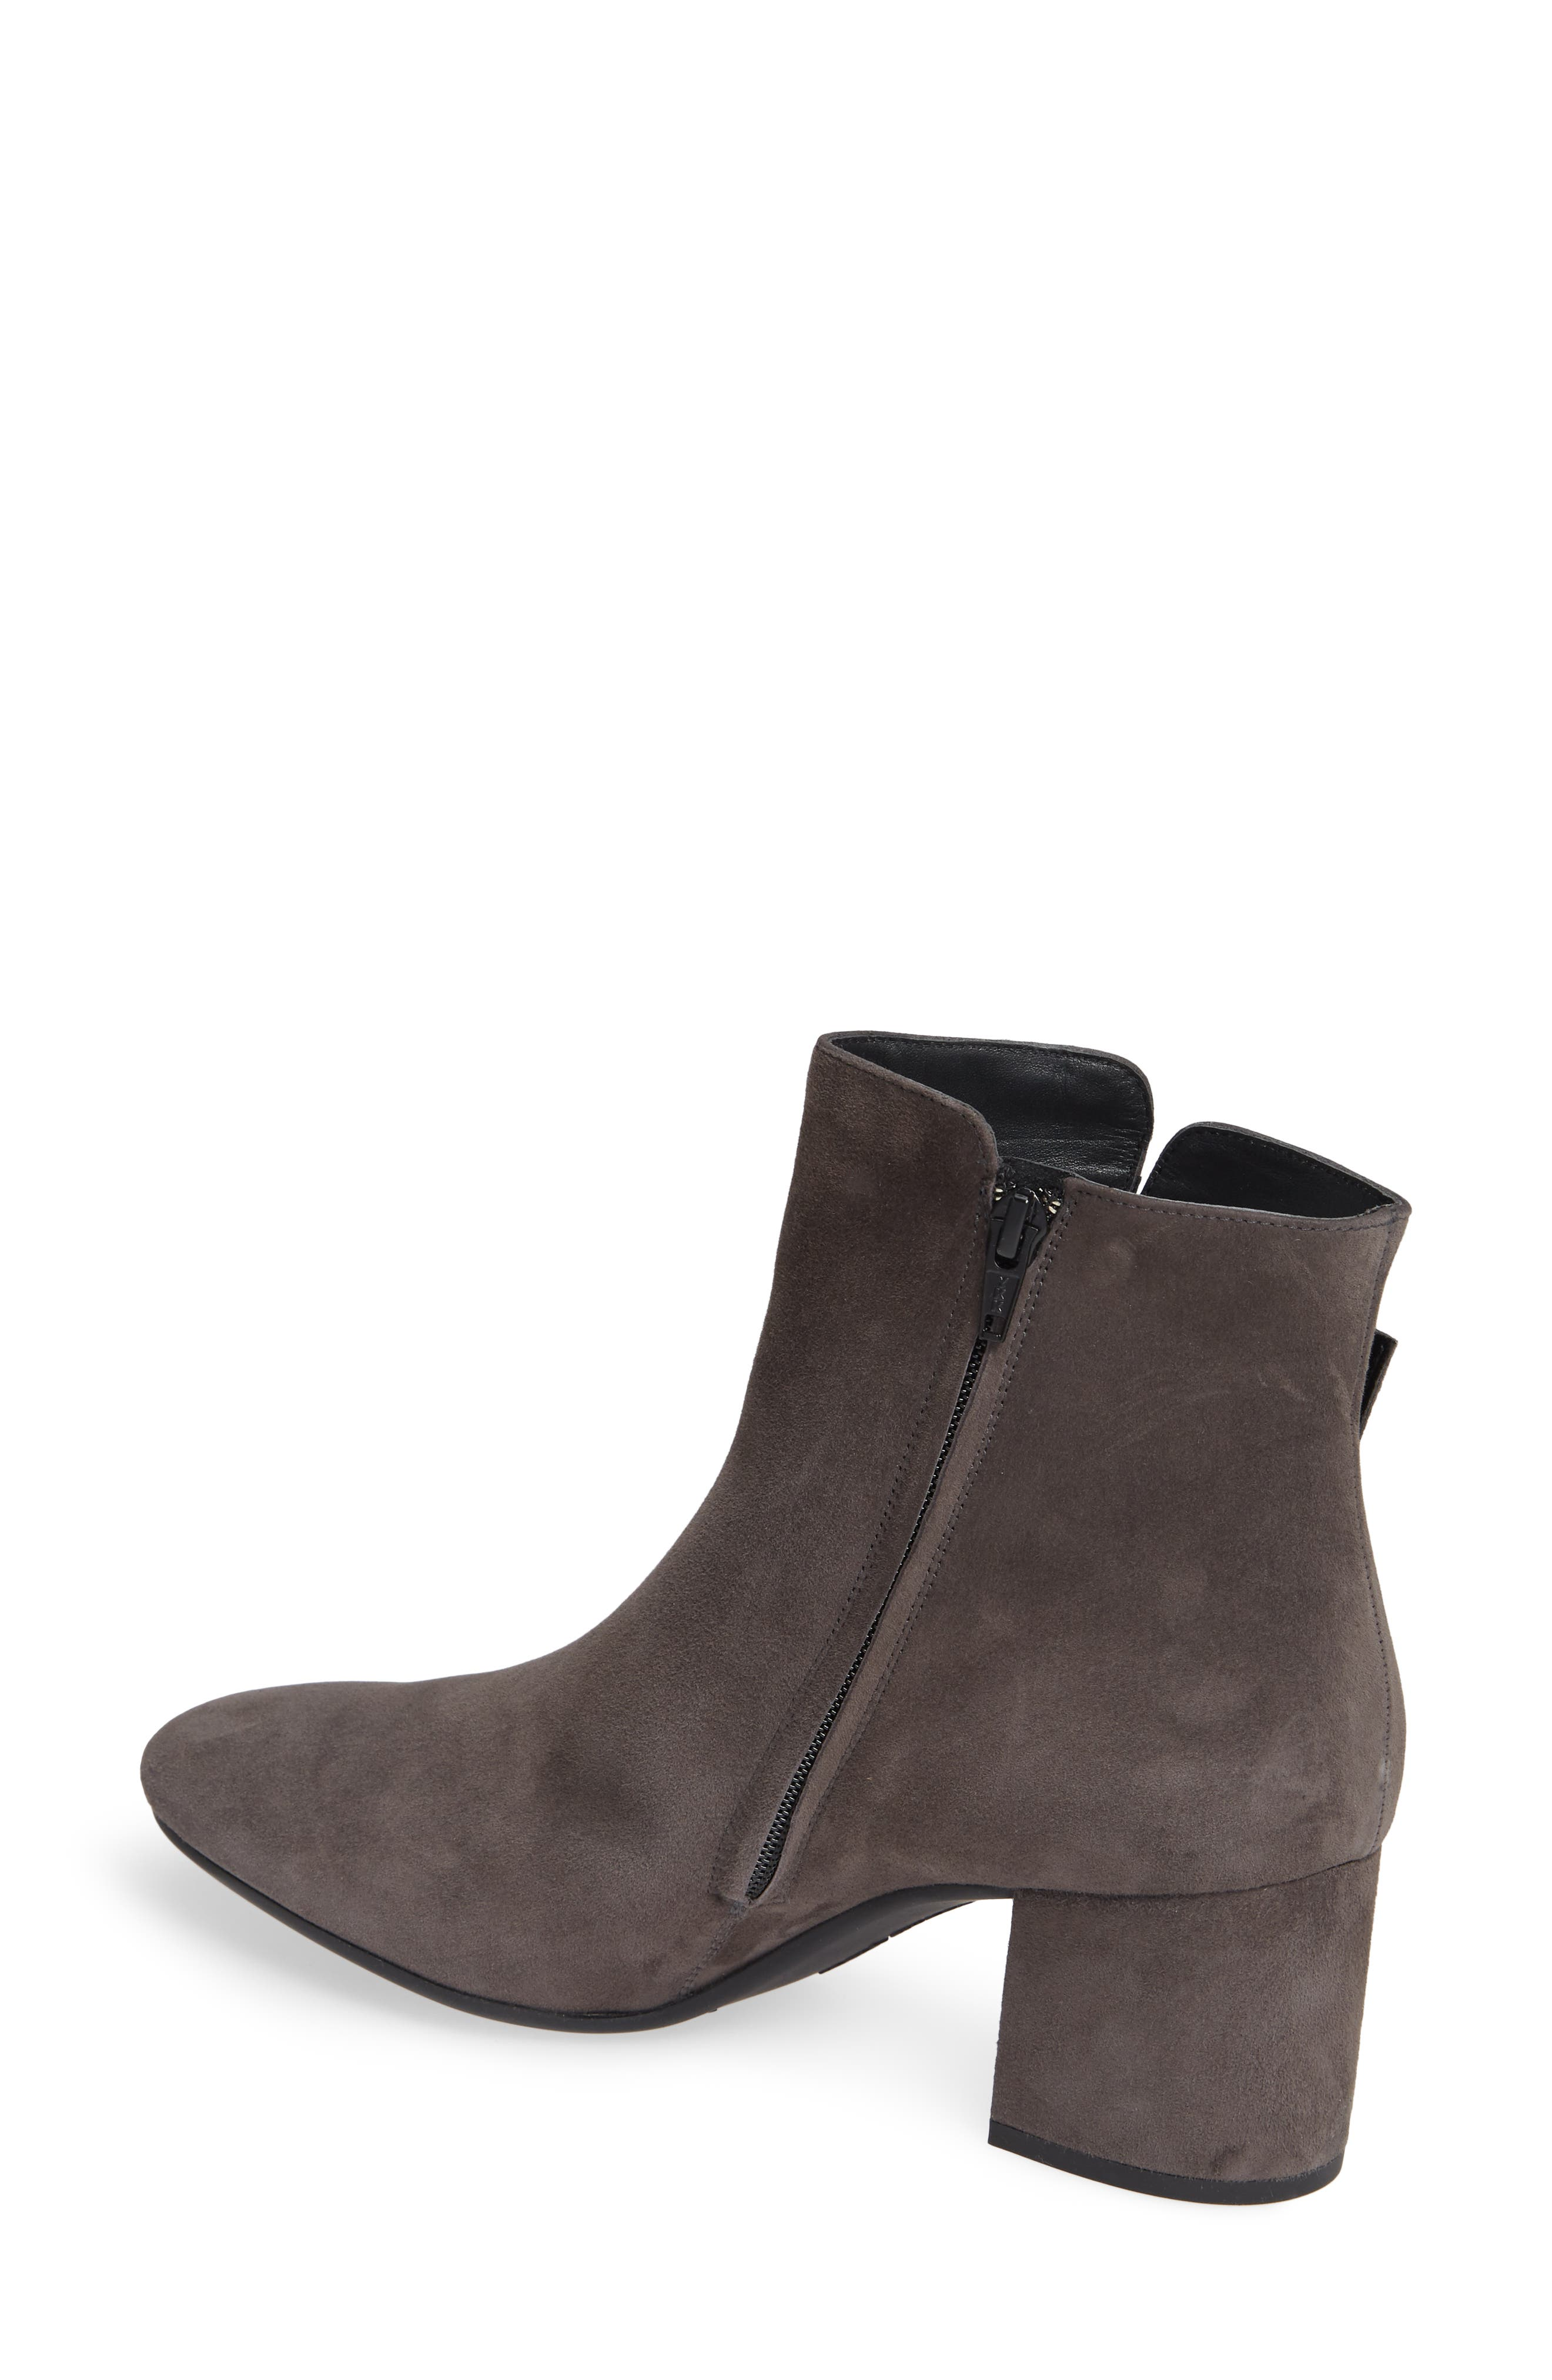 Taylor Bootie,                             Alternate thumbnail 2, color,                             IRON SUEDE